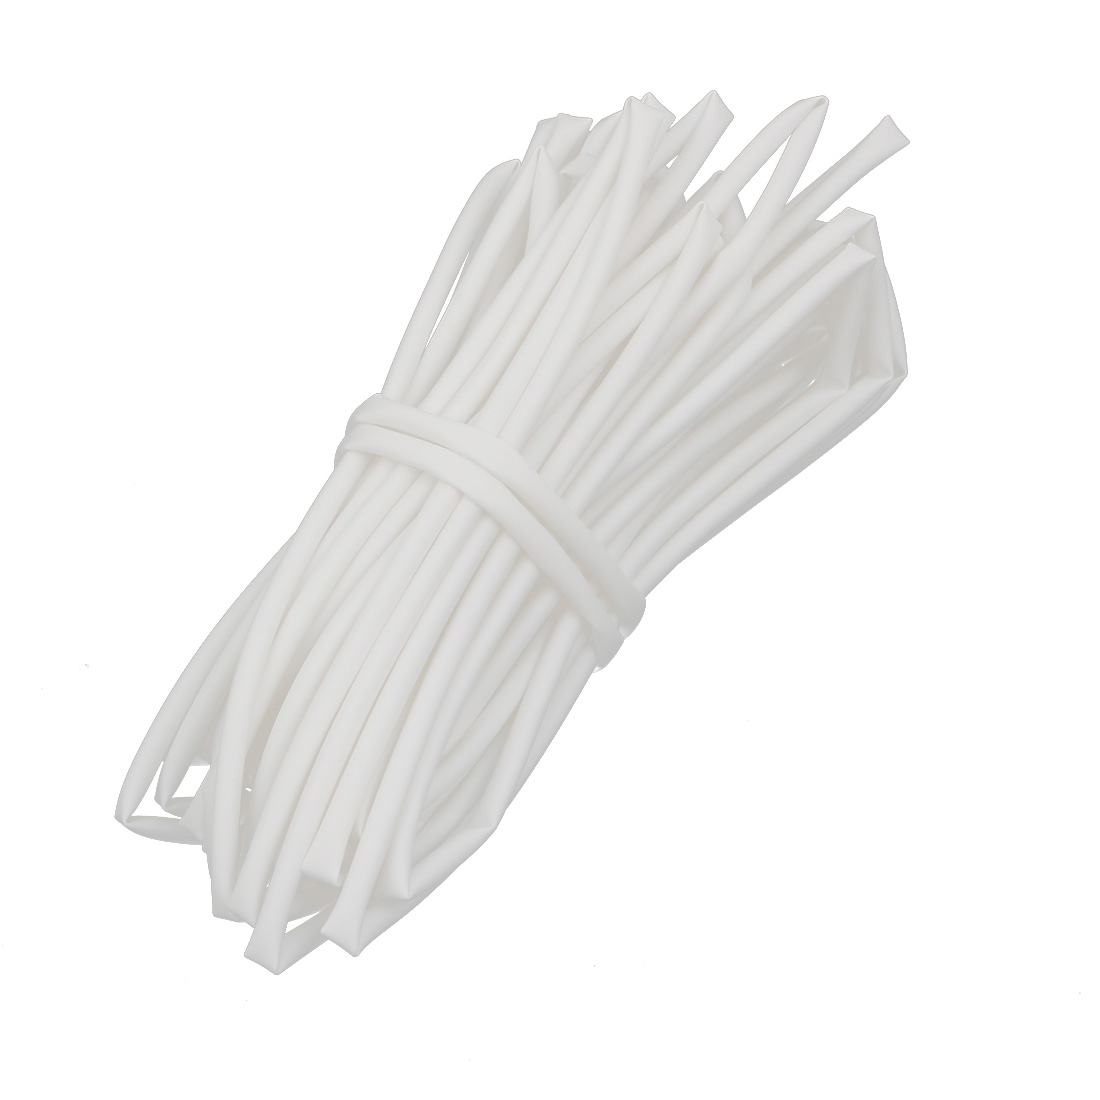 10M Length 2.5mm Inner Dia Polyolefin Insulated Heat Shrink Tube Wire Wrap White